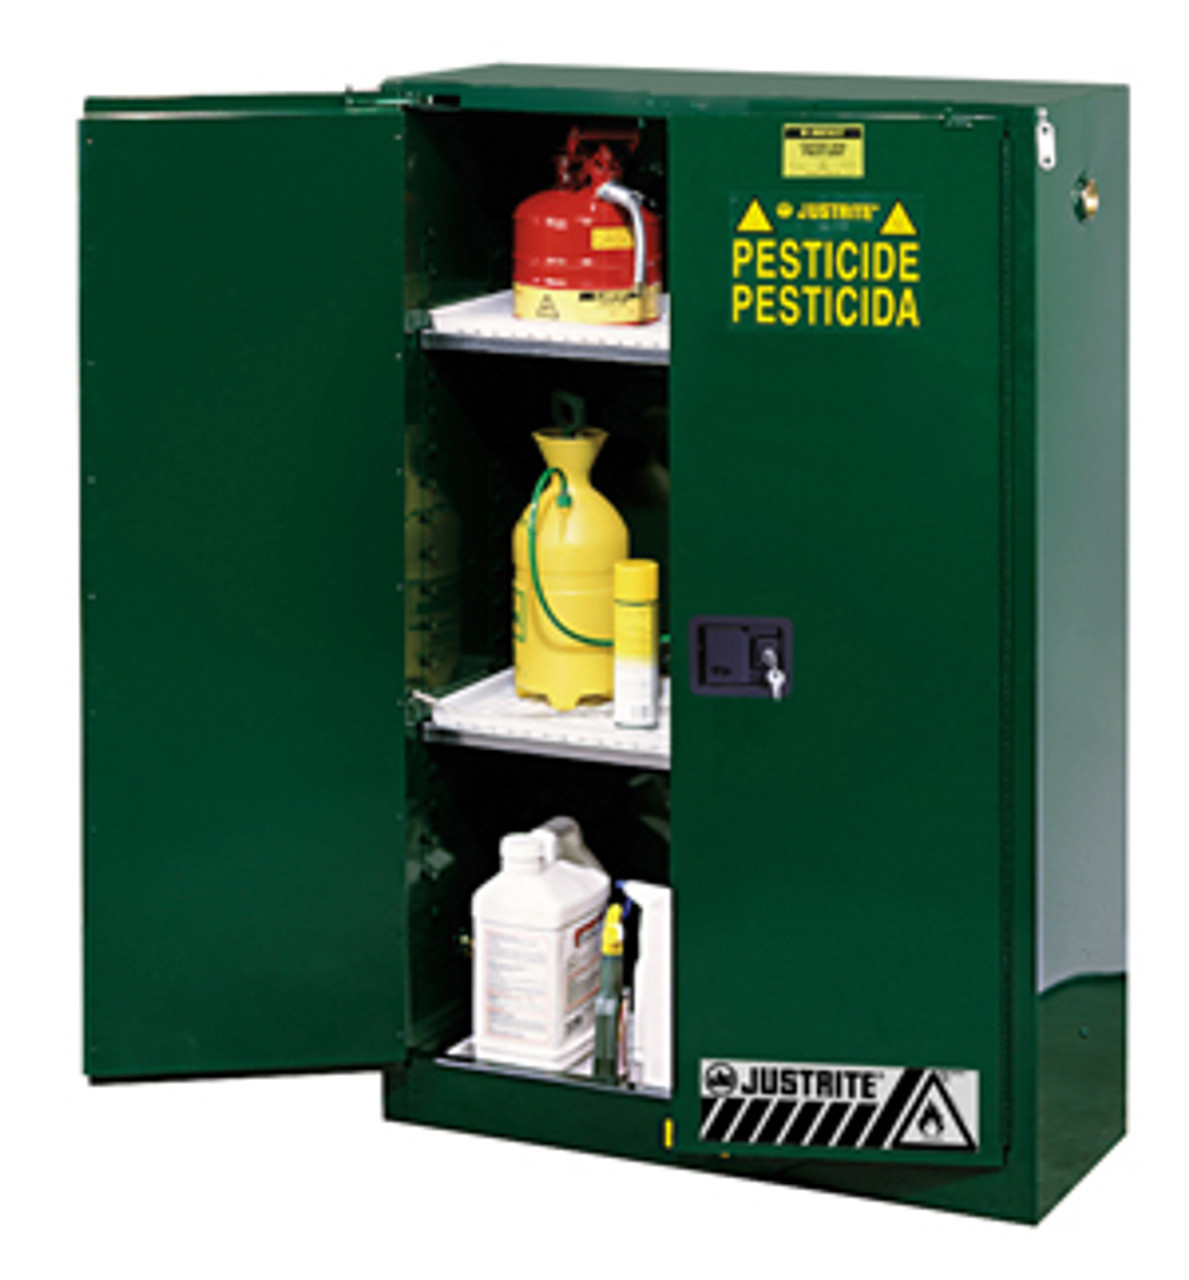 JUSTRITE Pesticide Safety Cabinets